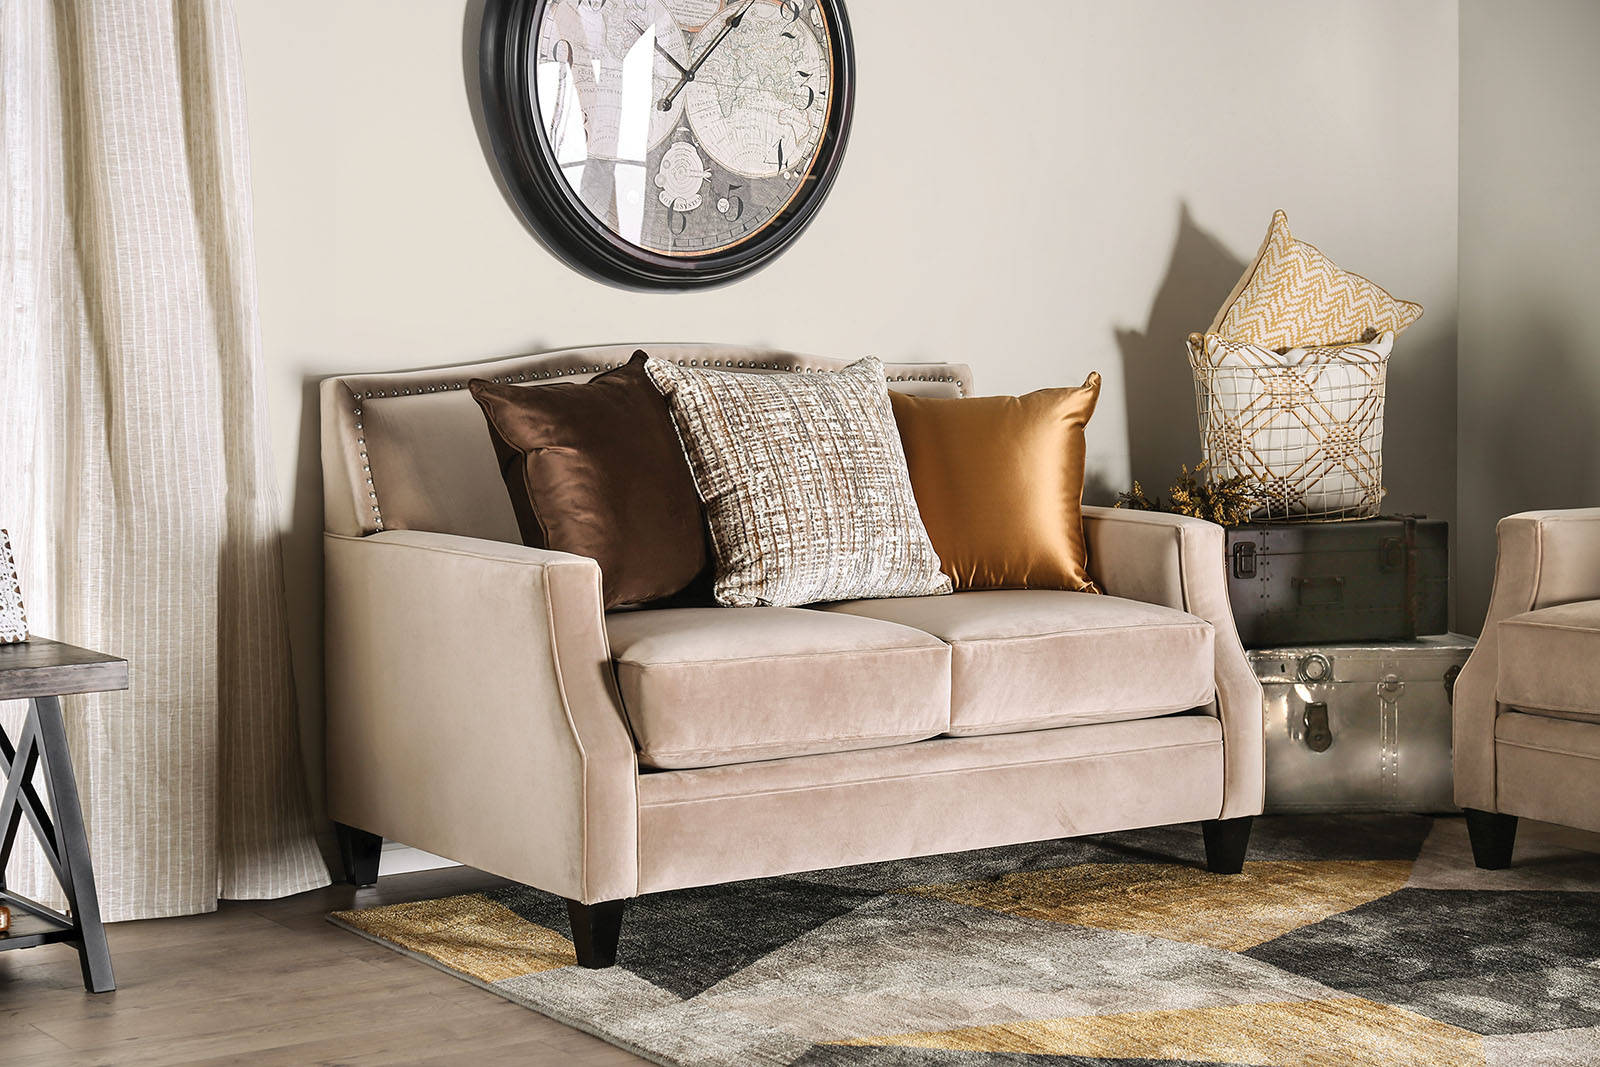 Superb Furniture Of America Camilla Tan Love Seat Bralicious Painted Fabric Chair Ideas Braliciousco